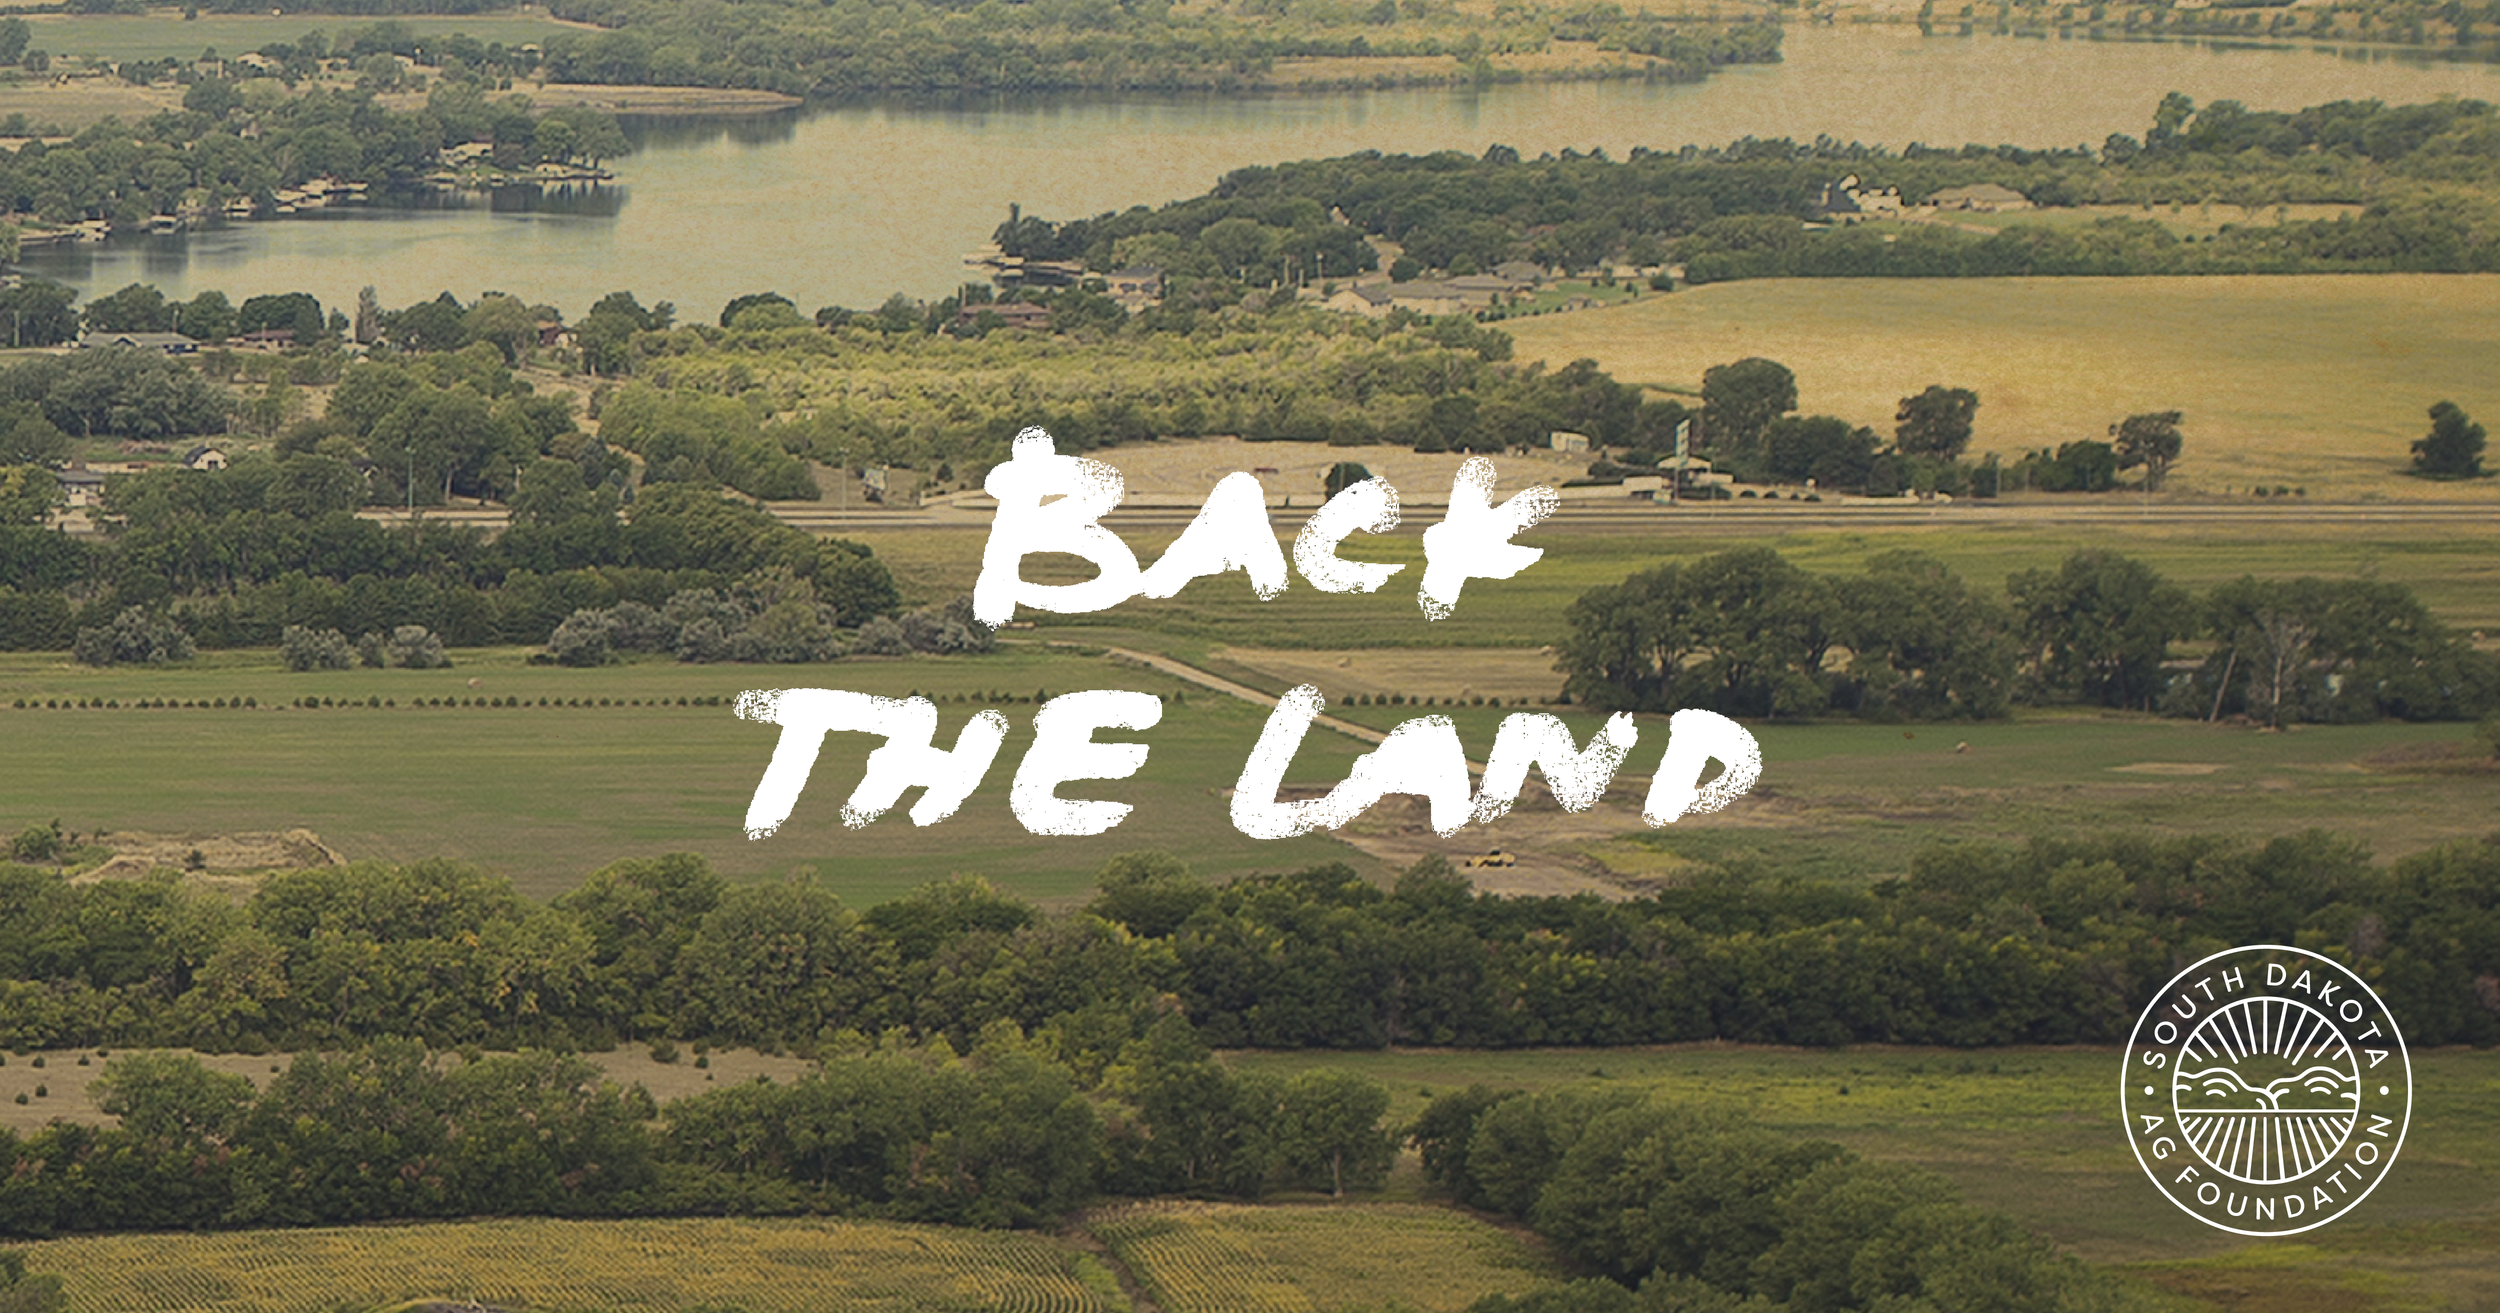 INVEST IN THE FUTURE OF AG - We're inviting South Dakotans to #BackTheLand for the future of agriculture in our state. Funds raised by the SD Ag Foundation will be matched by an additional $1 million from South Dakota Community Foundation and the Governor's office.